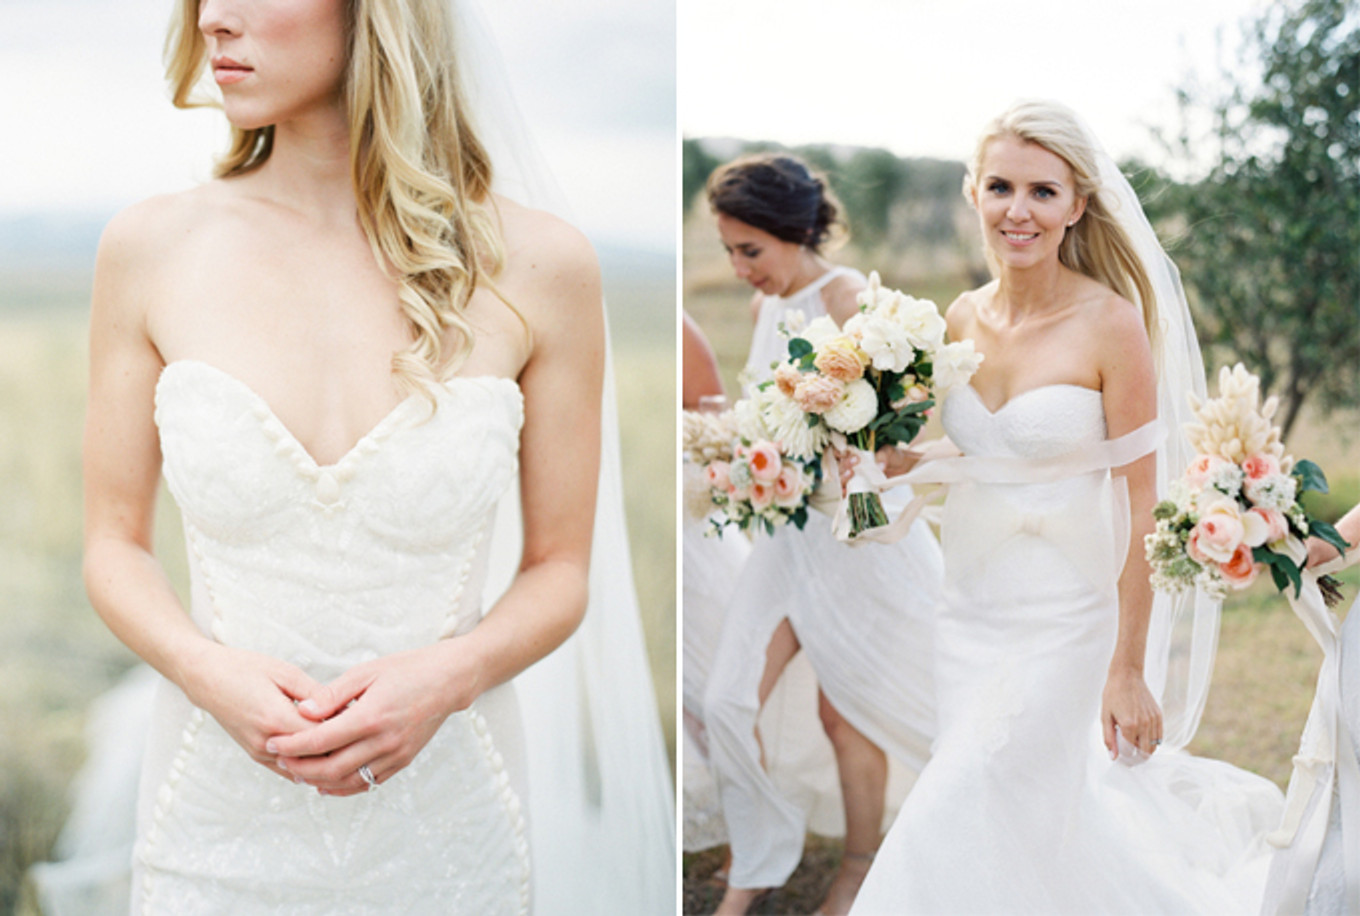 bc33283b692a07 The Bride s Guide to Finding the Perfect Wedding Dress - Bridestory Blog